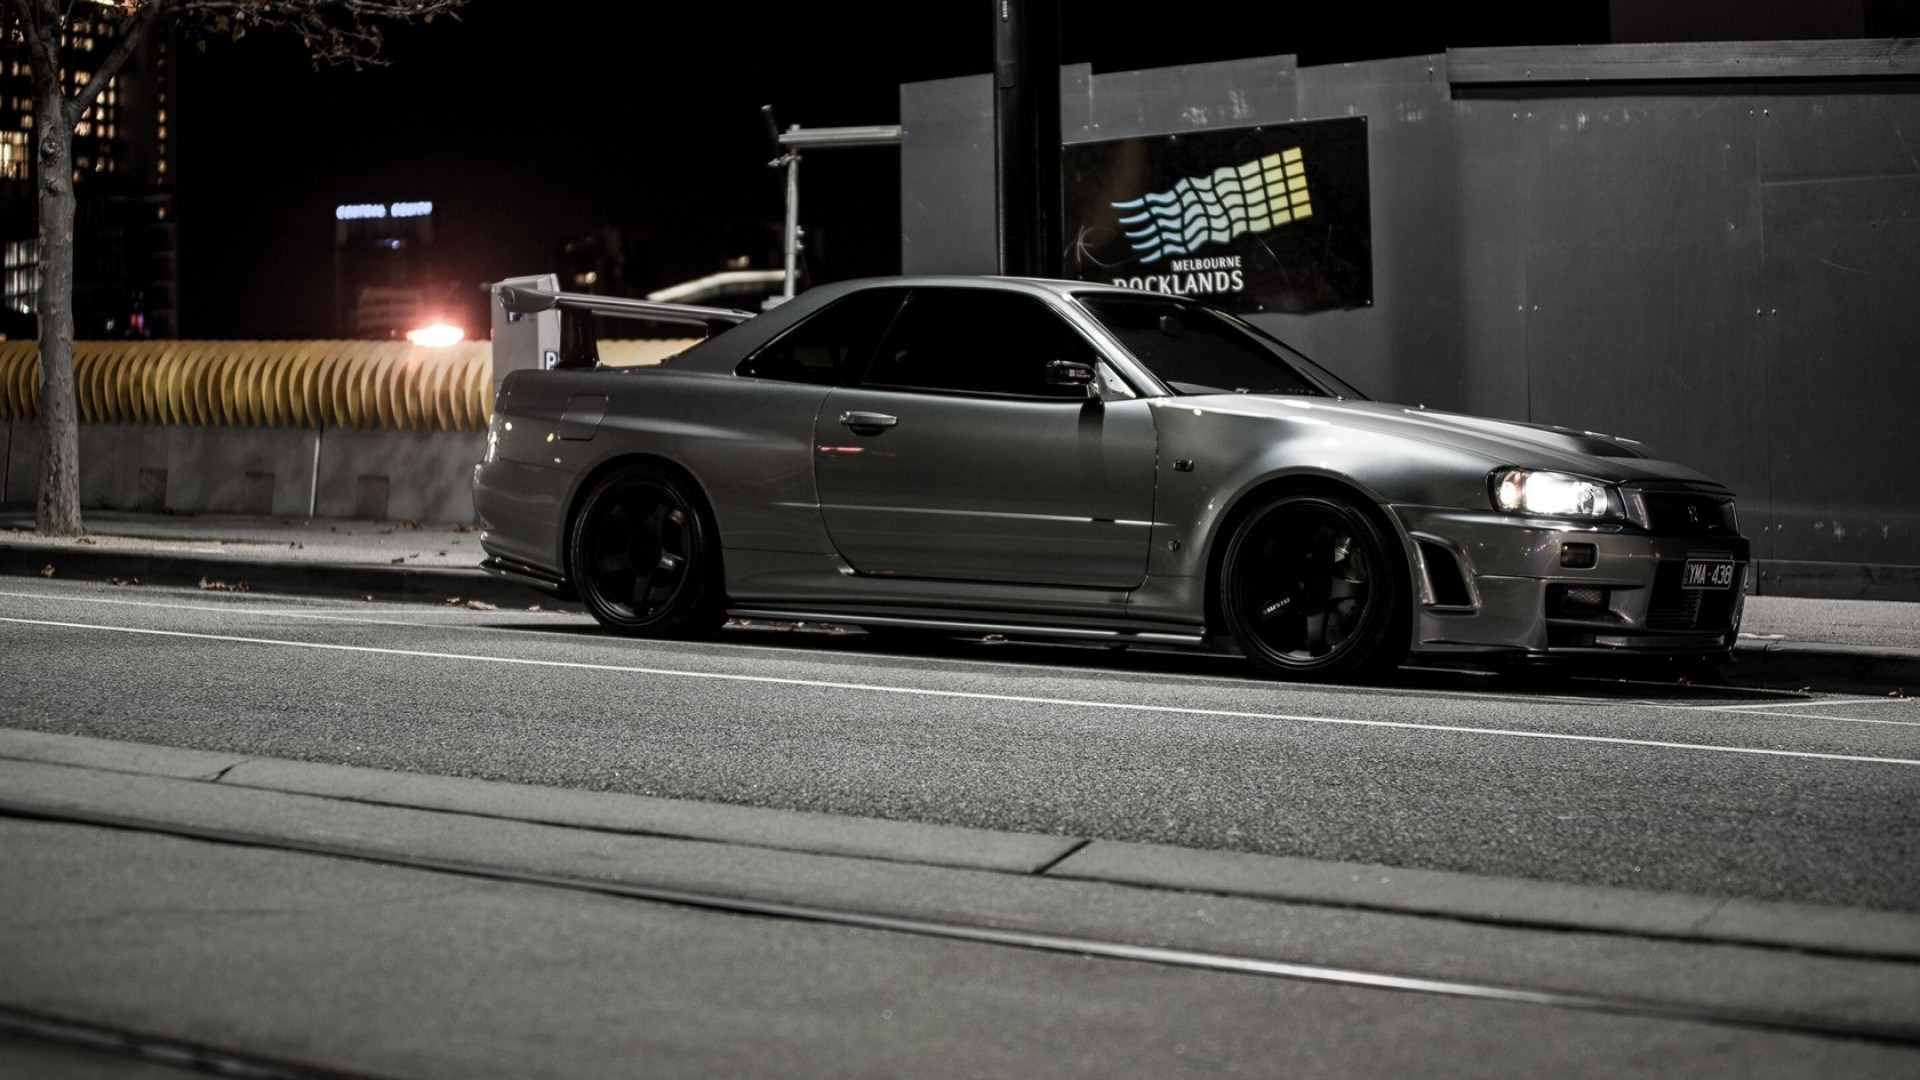 Nissan Skyline Full HD Wallpaper and Background Image ...